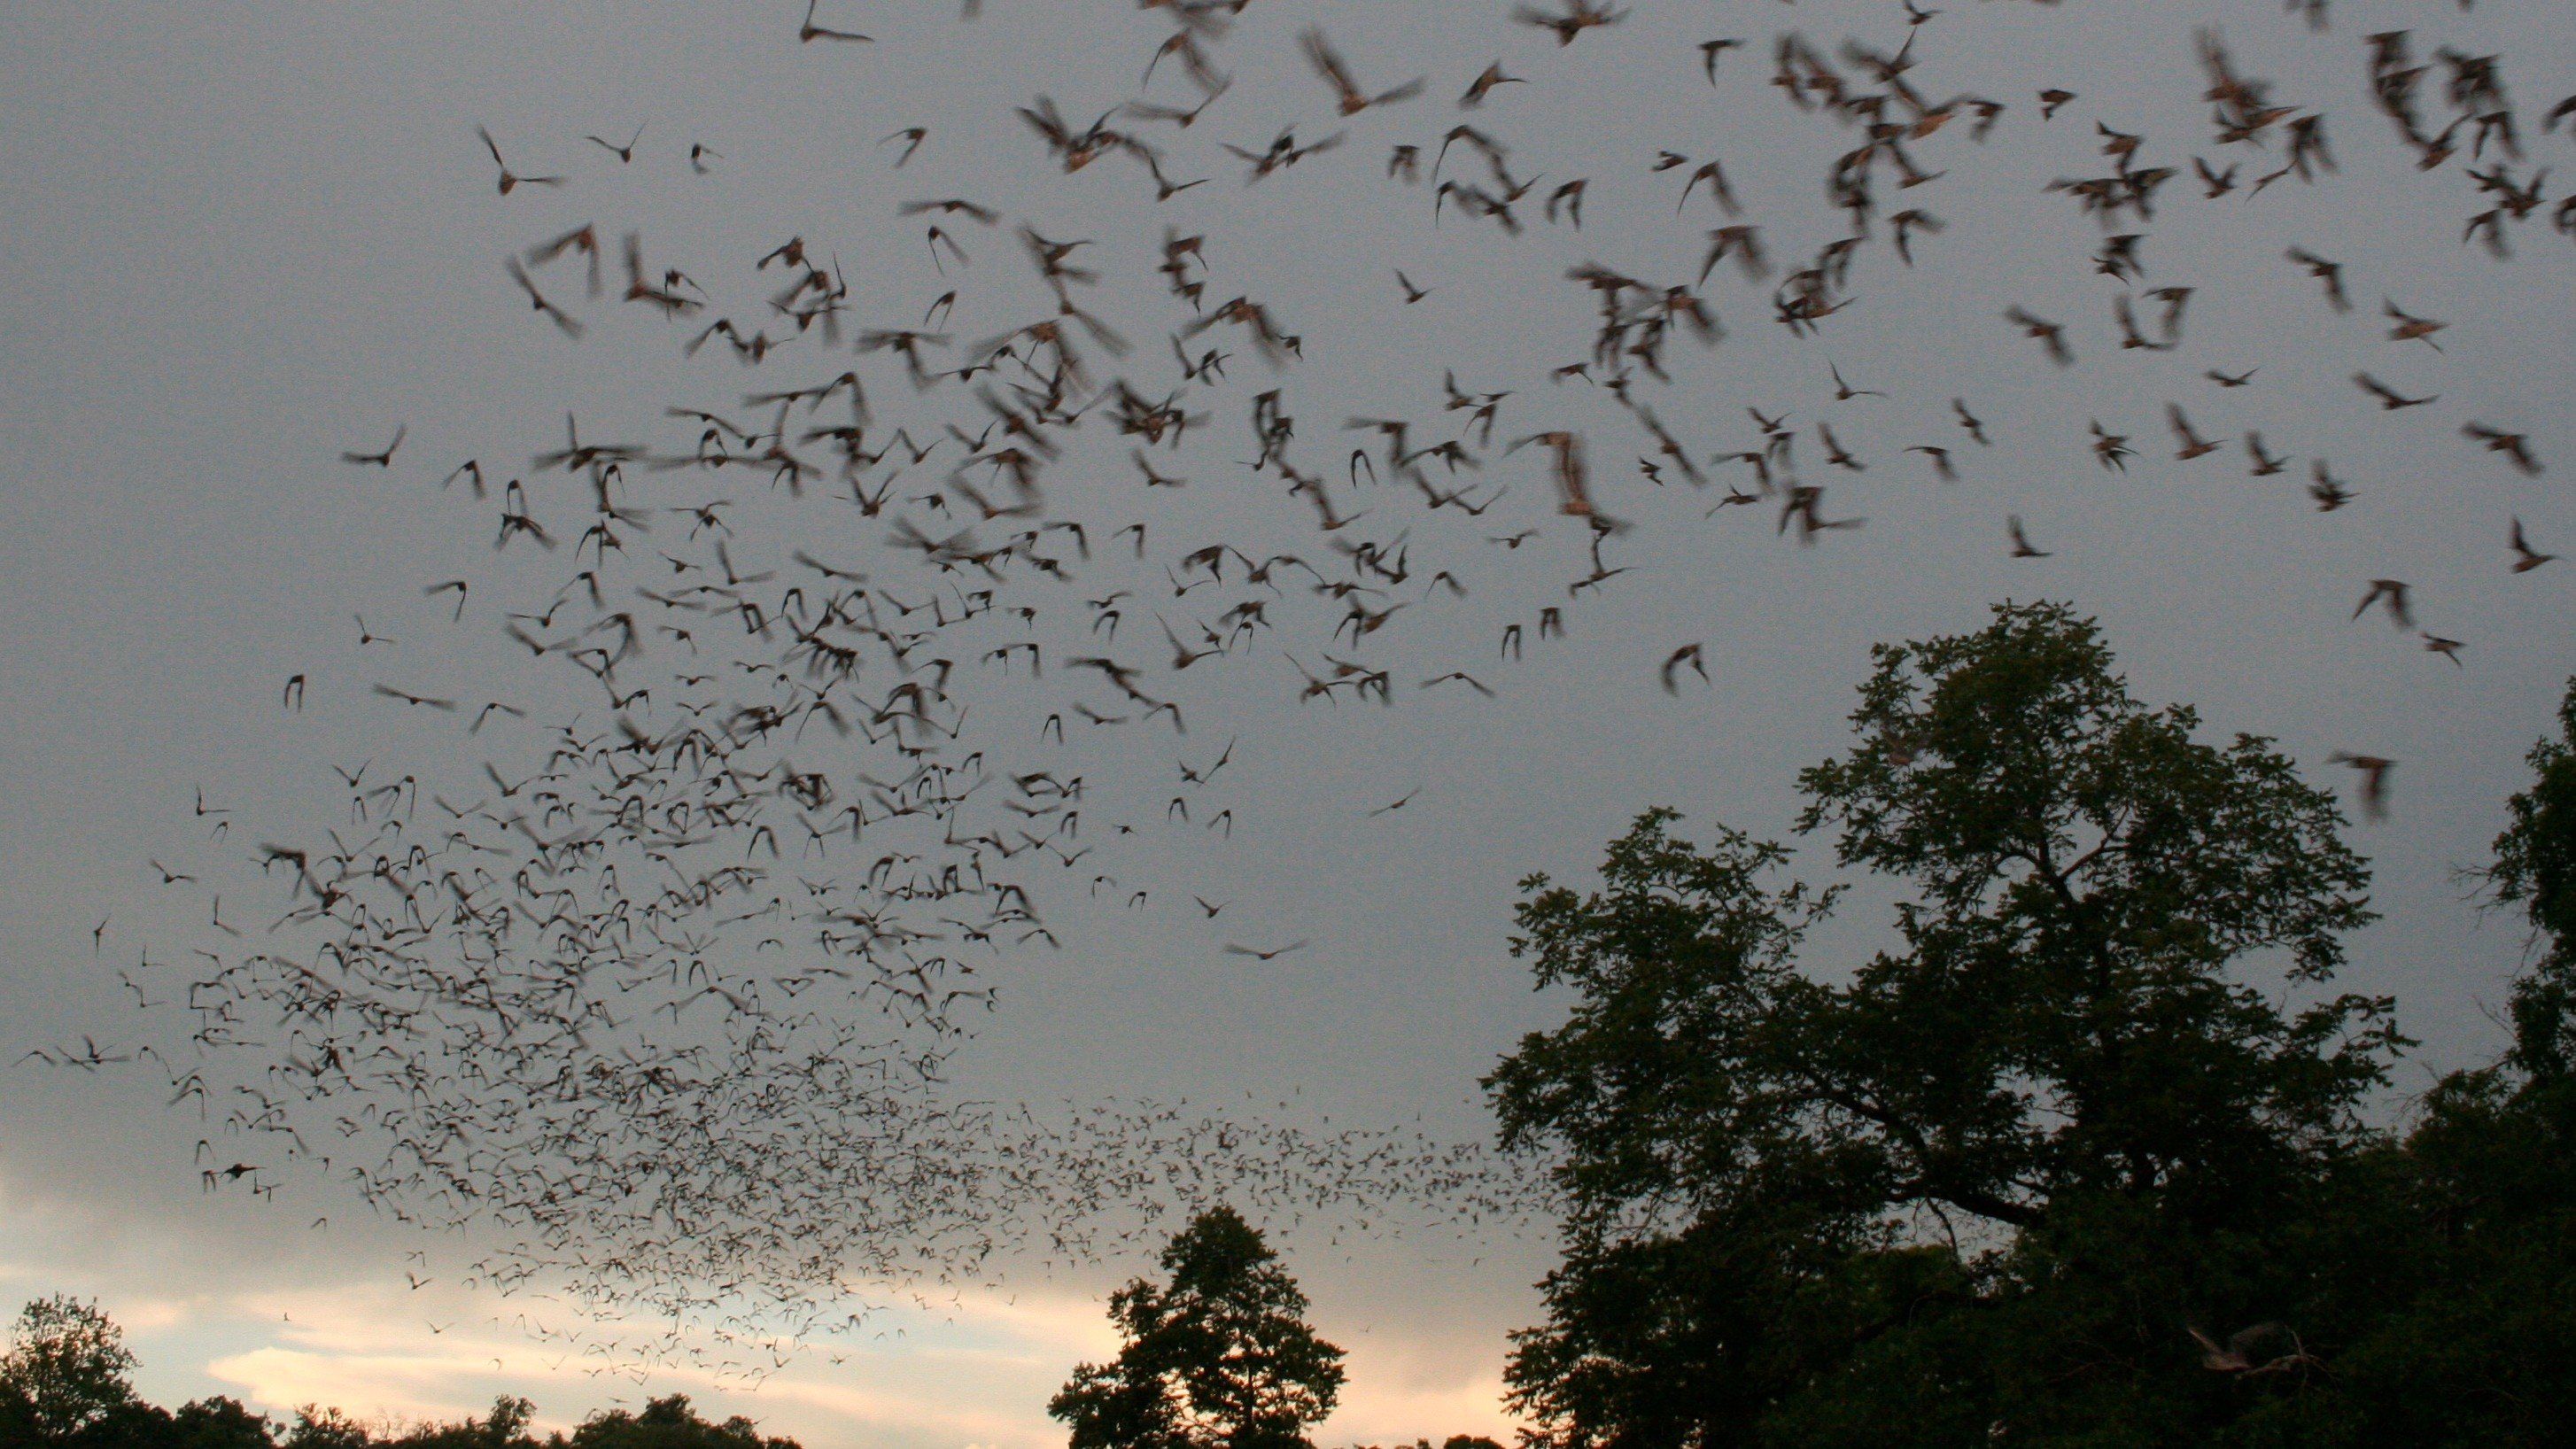 This Medicine-Misting Bat Cave 'Air Freshener' Could Ward Off a Deadly Disease